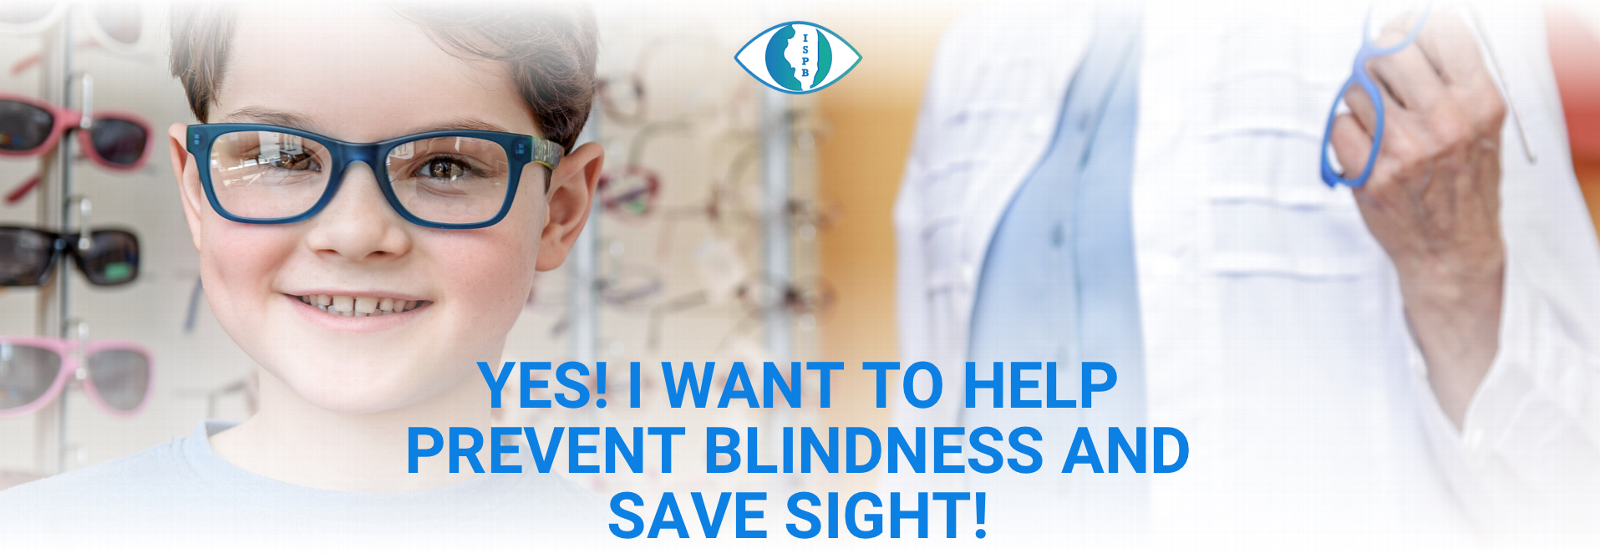 Support the Illinois Society for the Prevention of Blindness!